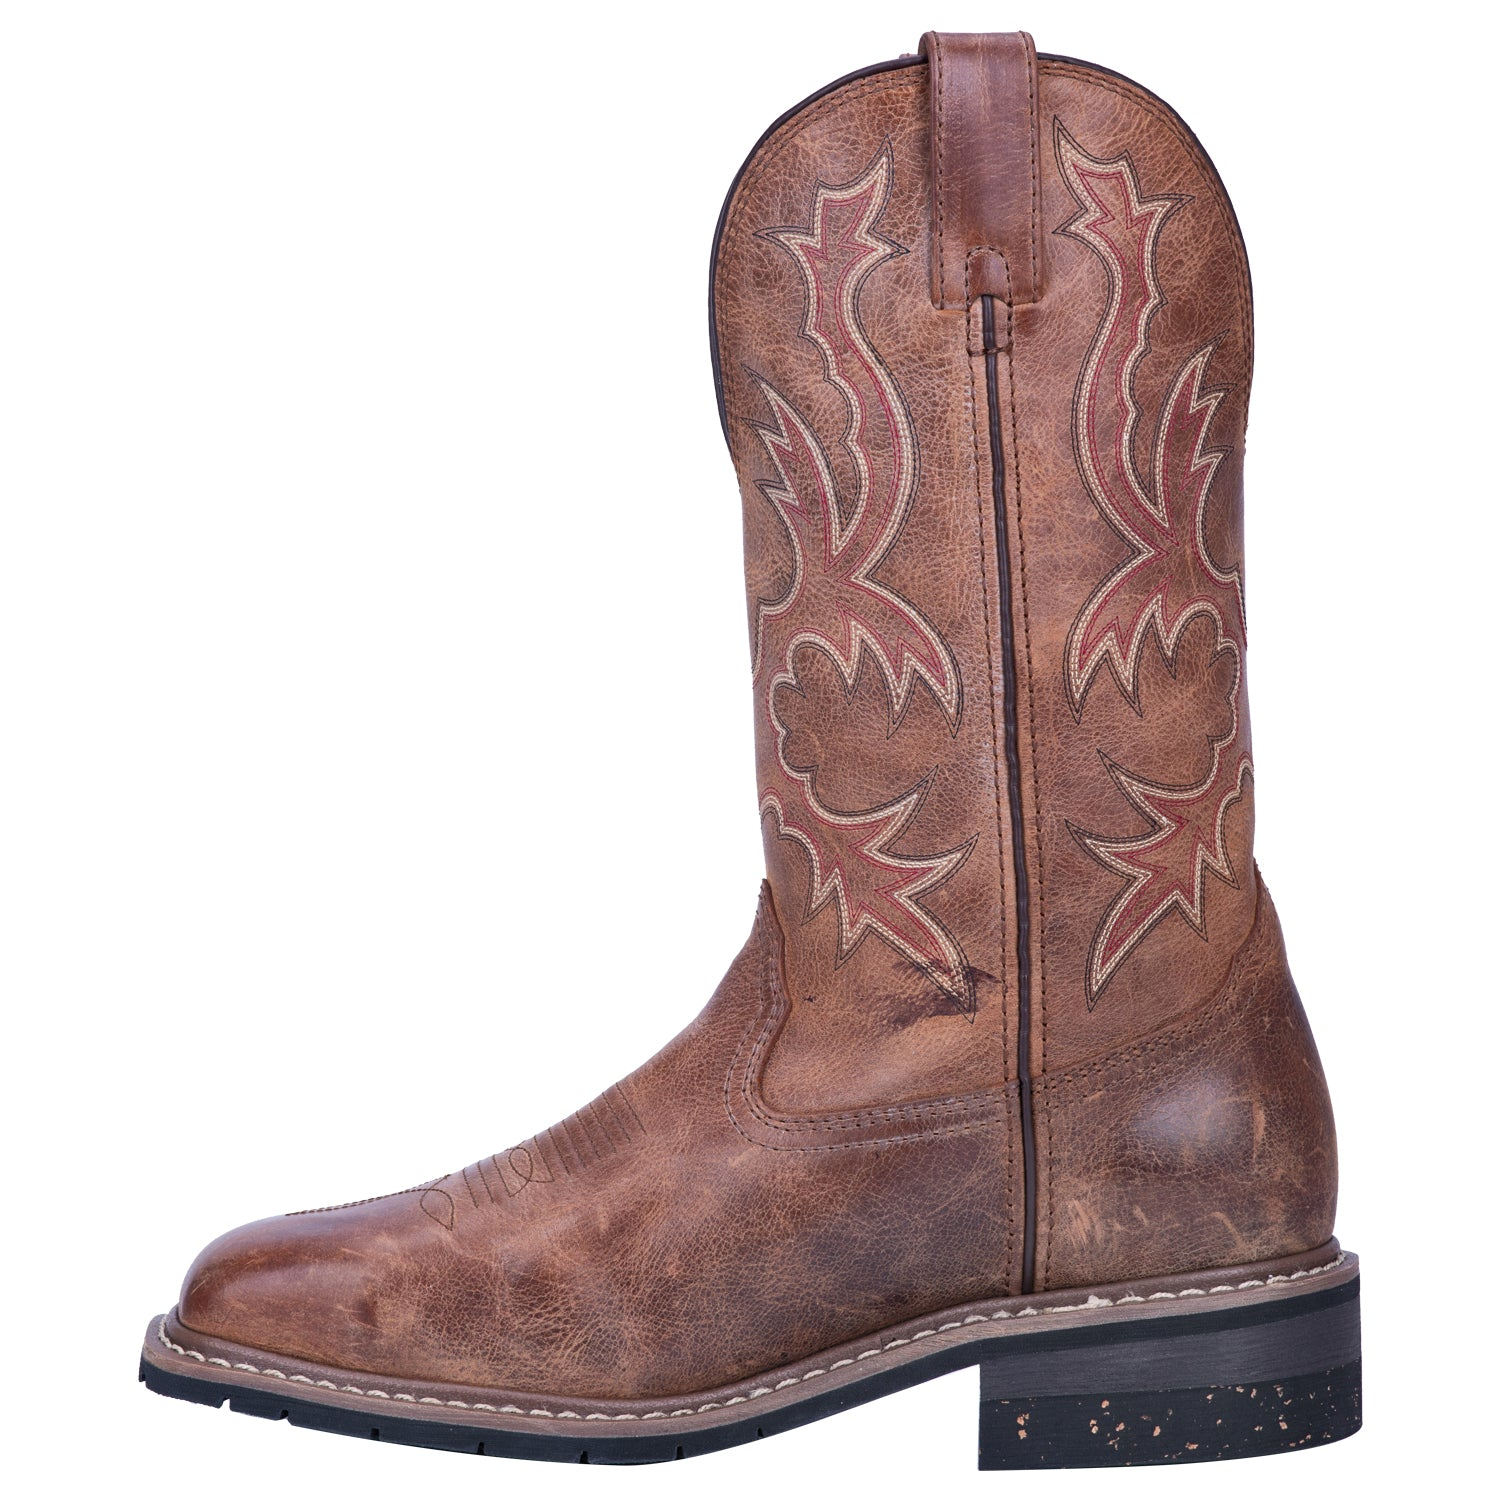 NOGALES WATERPROOF LEATHER BOOT 4253979017258